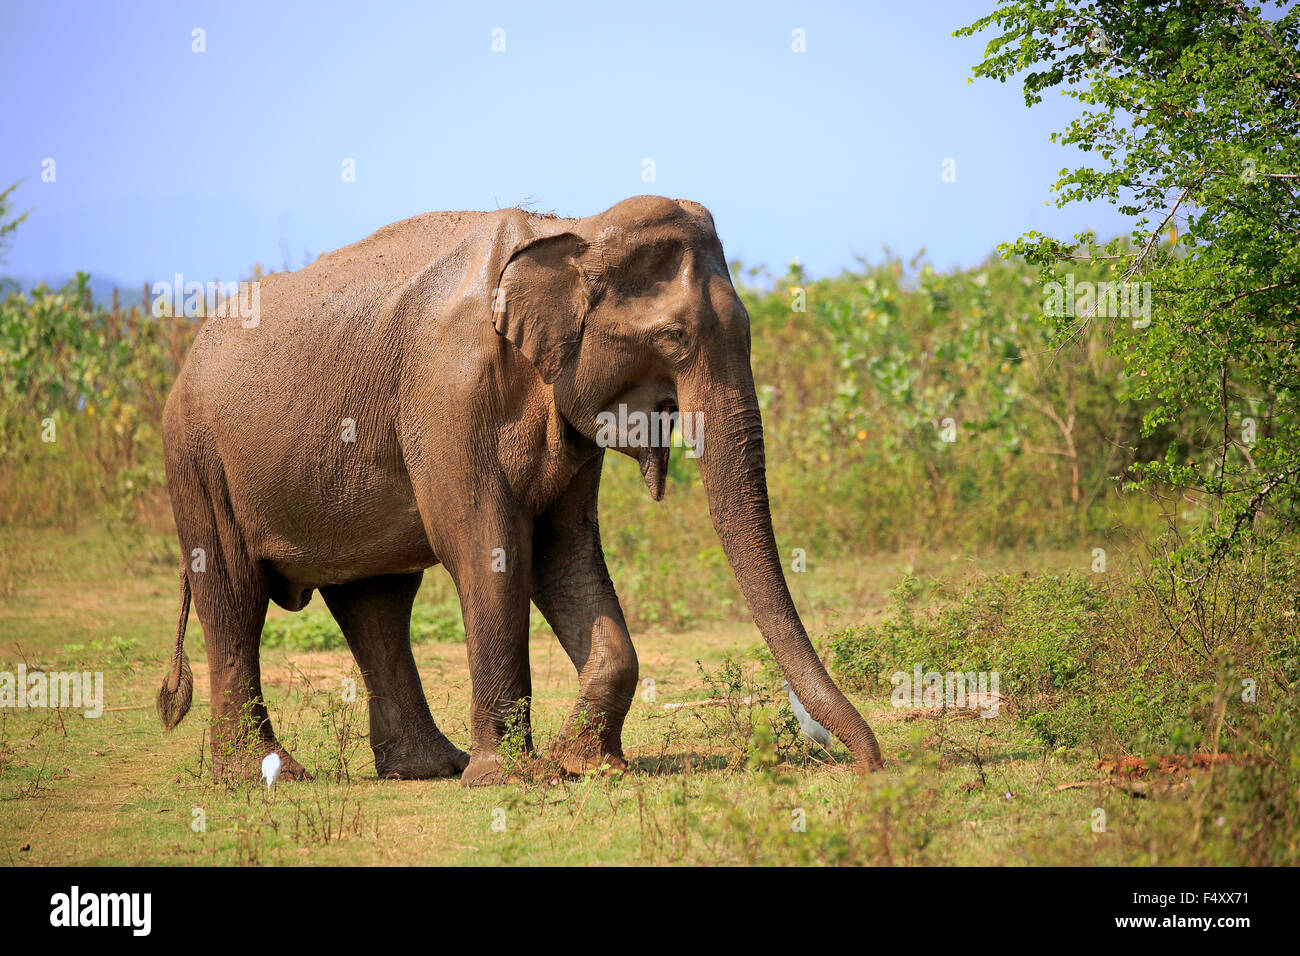 L'éléphant du Sri Lanka (Elephas maximus maximus), adulte, homme, alimentation, parc national Udawalawe, Photo Stock